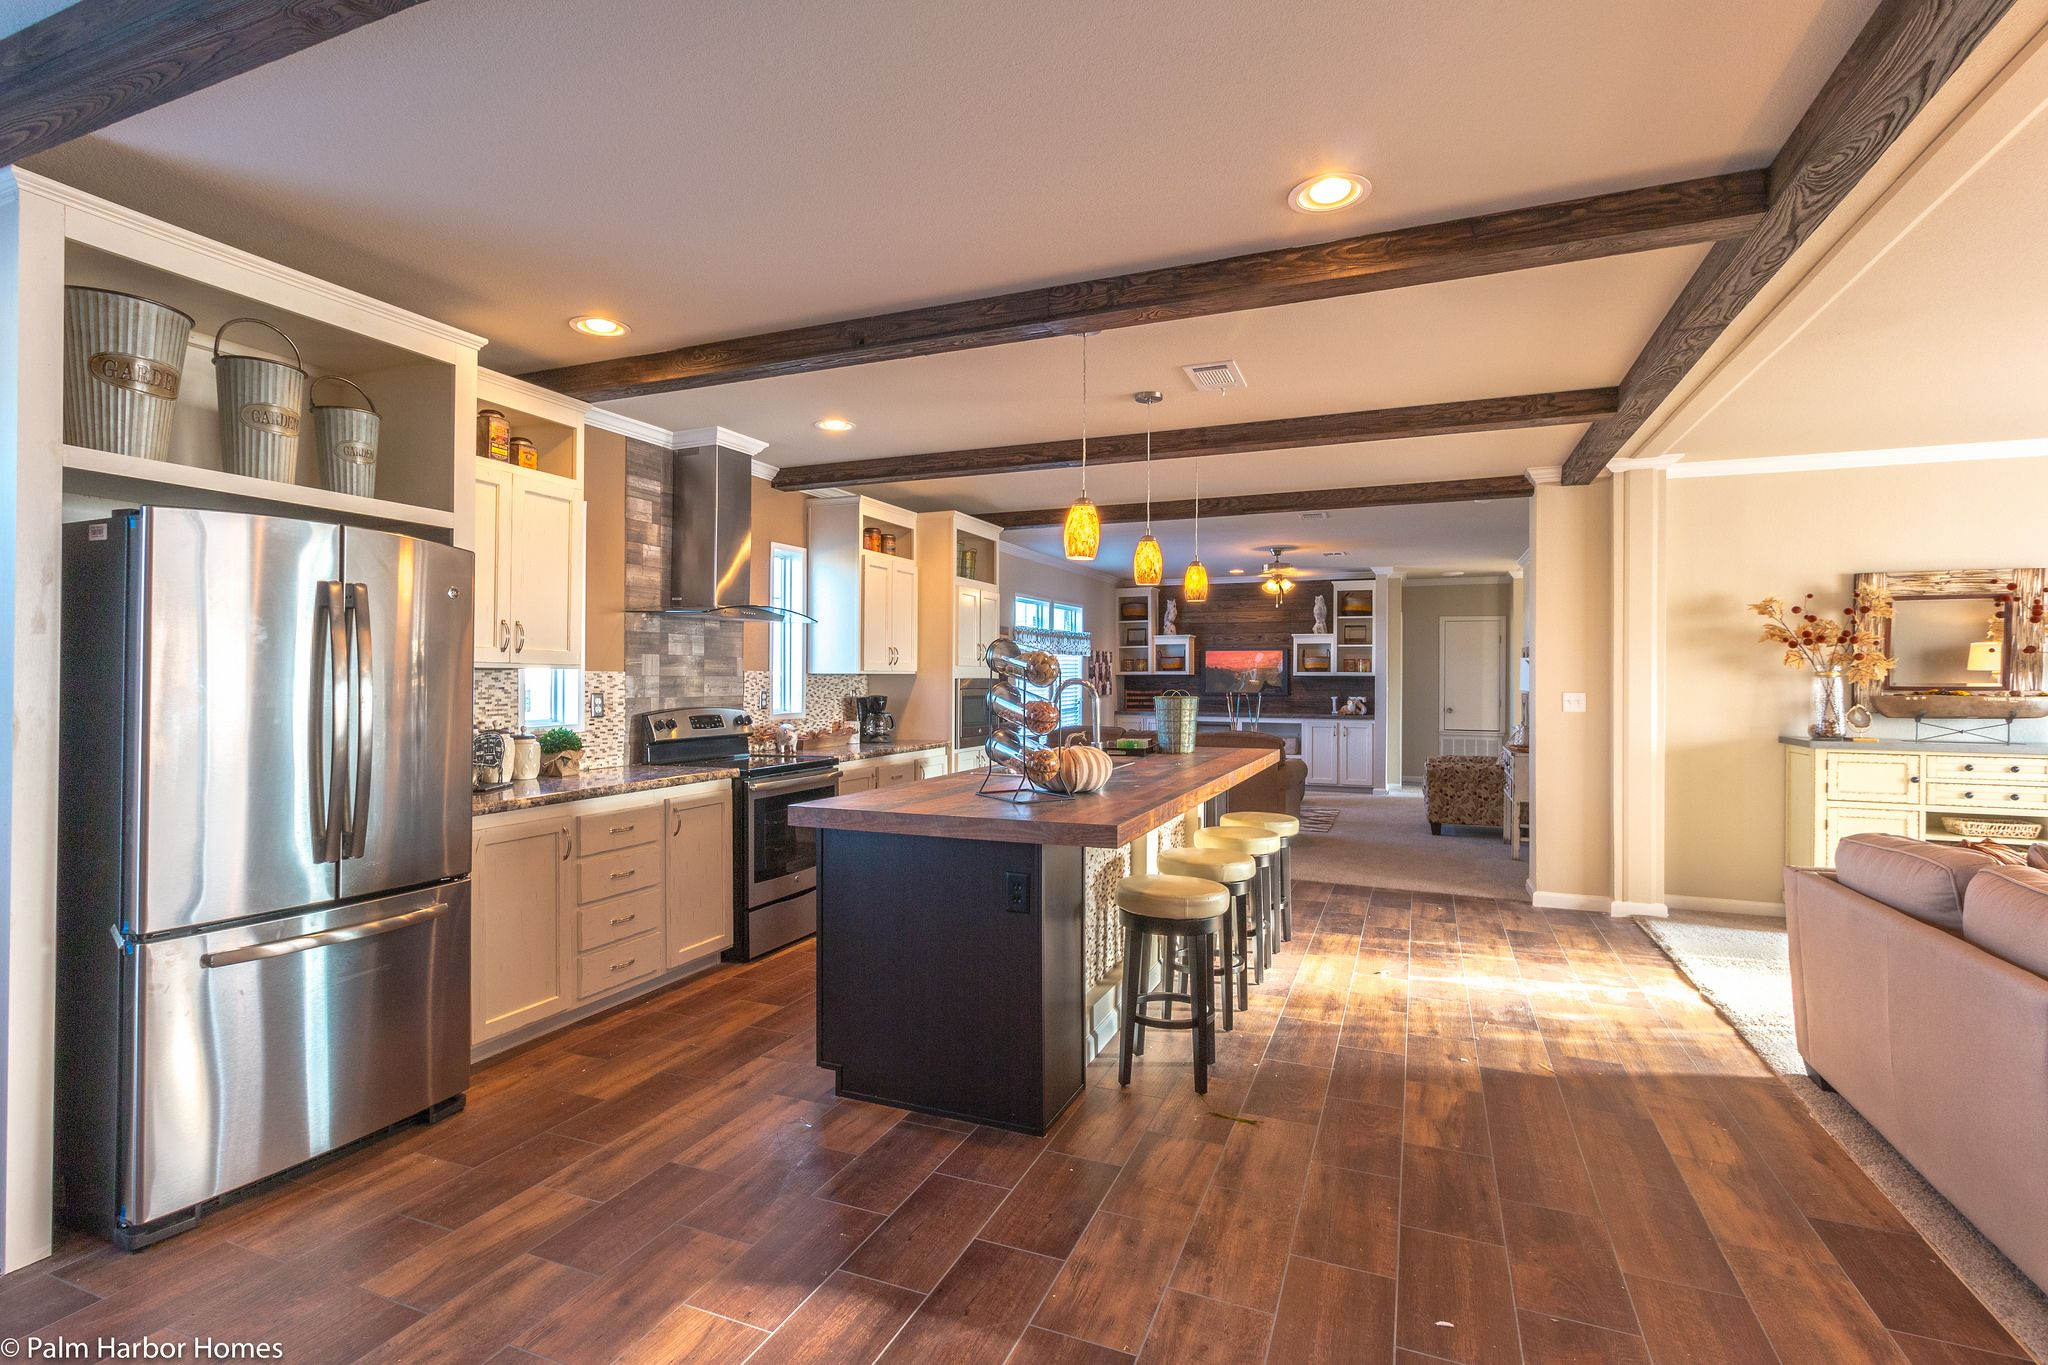 Here s how to get a Gourmet kitchen from Palm Harbor Homes in your modular  home. More Home Blog   More Custom cabinets ideas